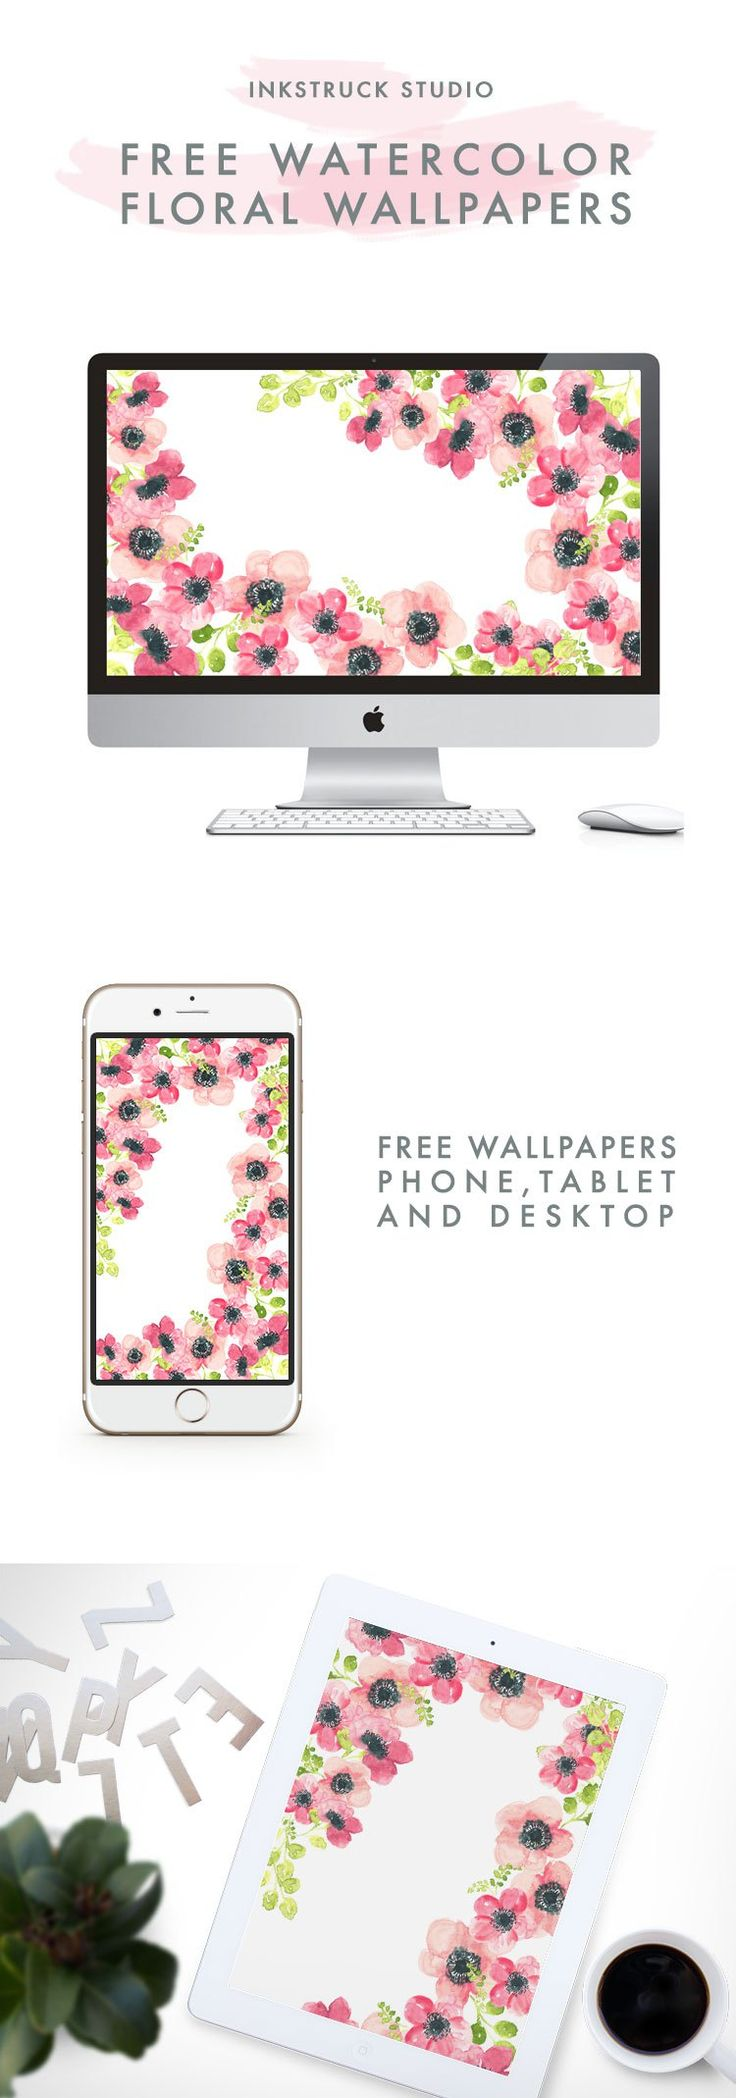 WATERCOLOR FLORAL WALLPAPERS - Inkstruck Studio